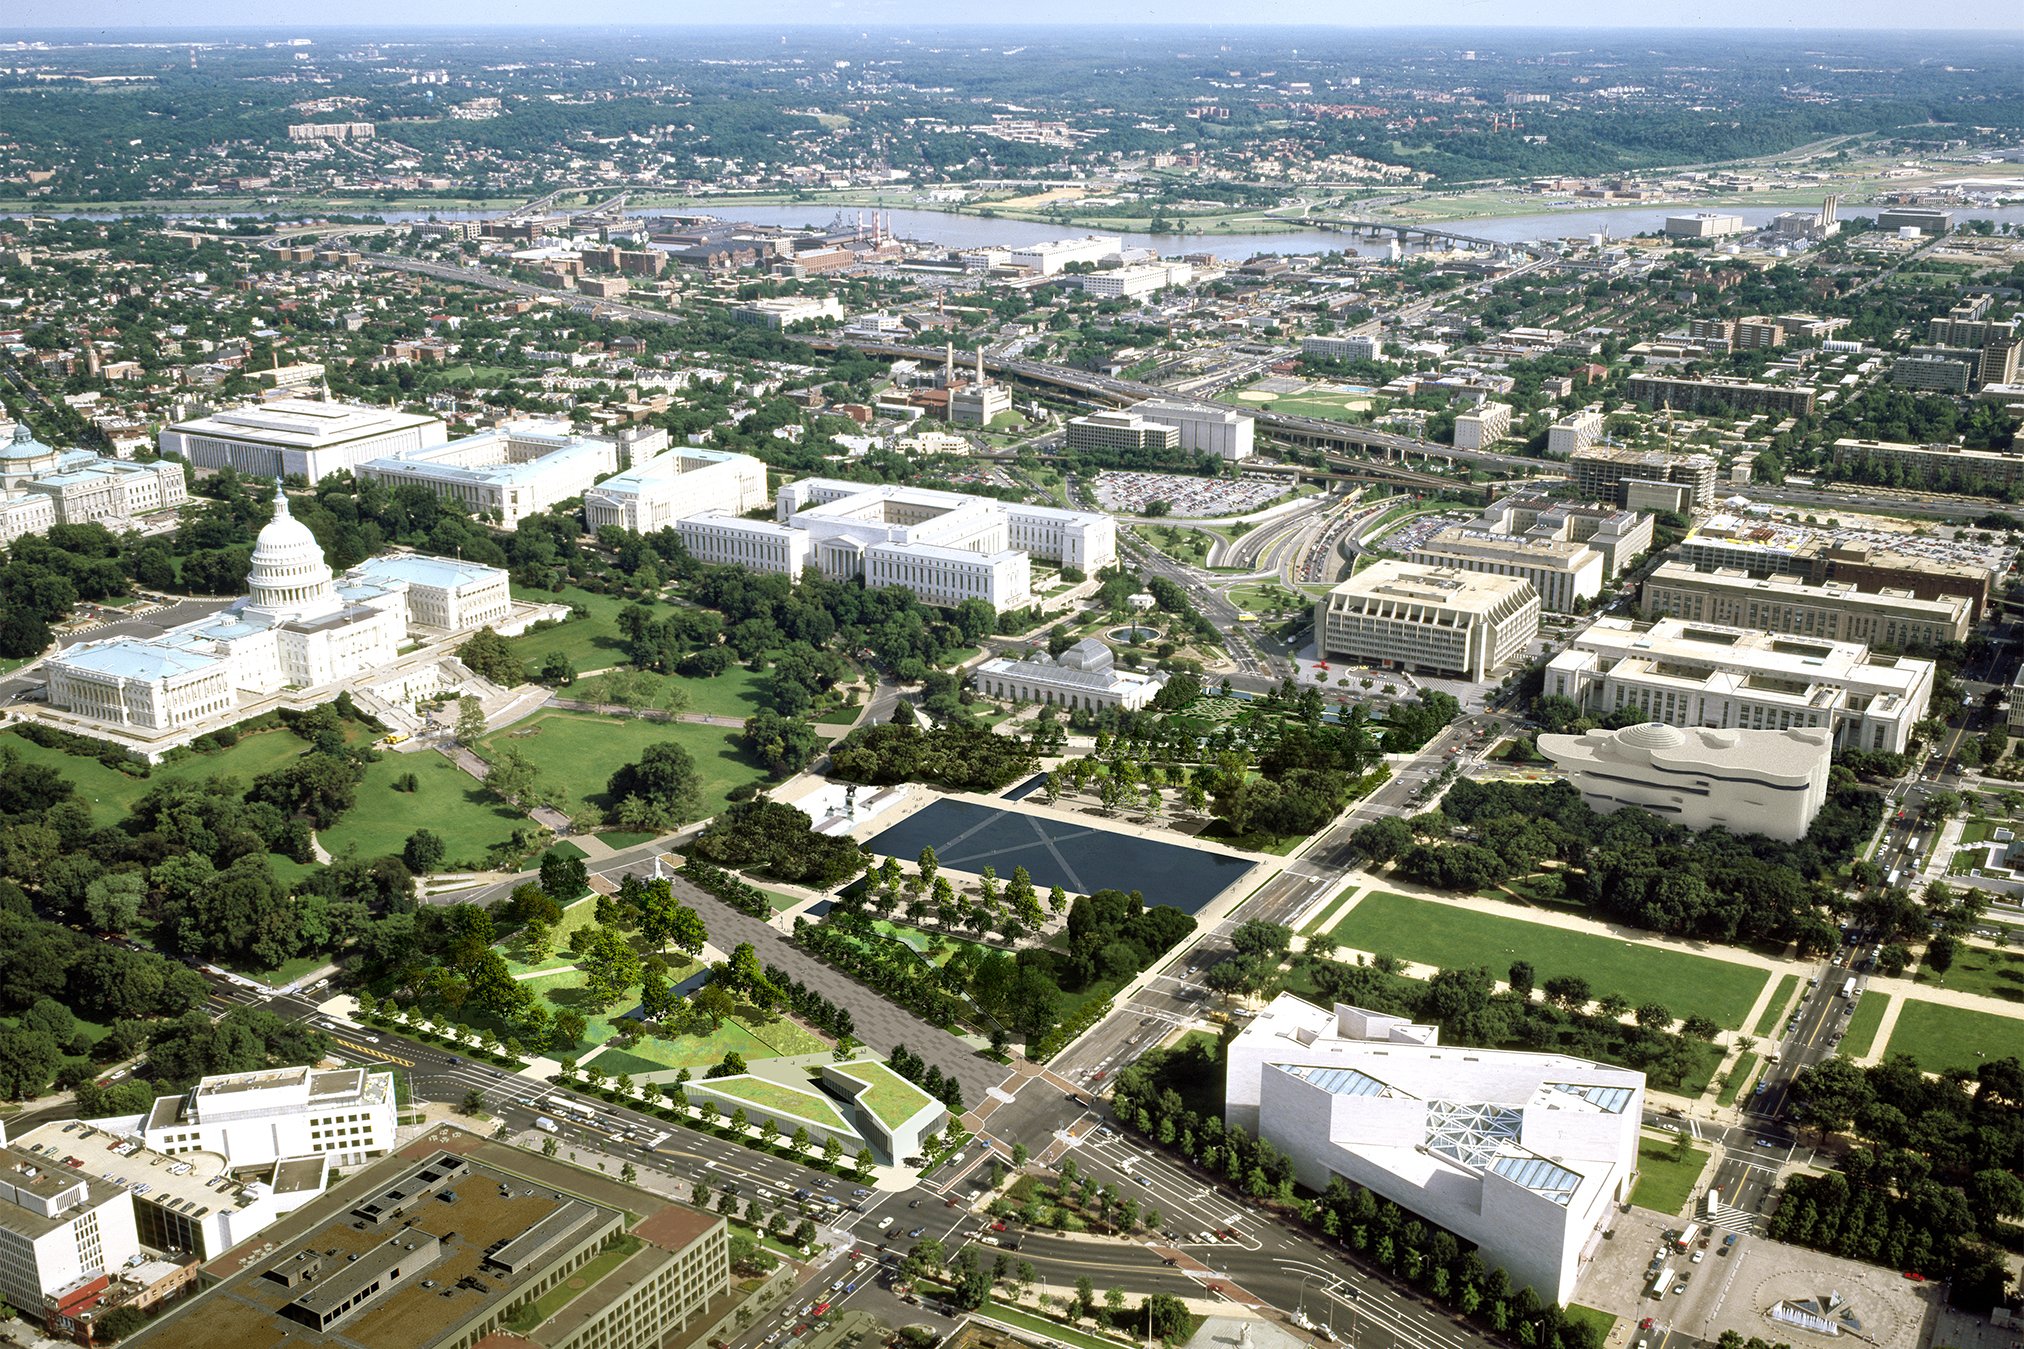 Aerial view of Washington, D.C., focusing on the west side of the U.S. Capitol and its reflecting pool.